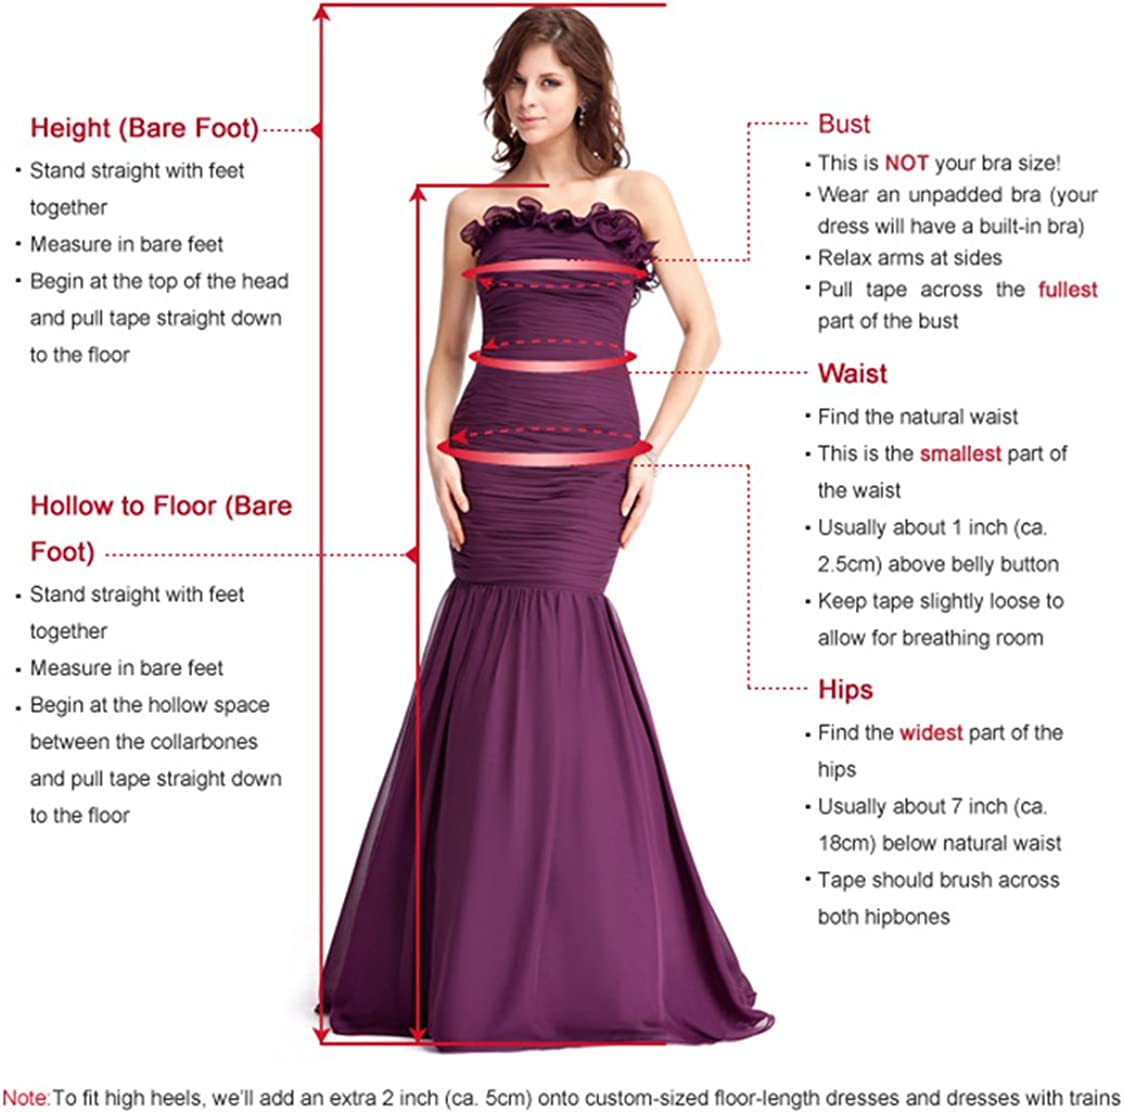 Emmani Women's Two Piece Short Homecoming Dresses Tulle Ball Gown Prom Dresses Beaded Party Dresses Style 2-burgundy